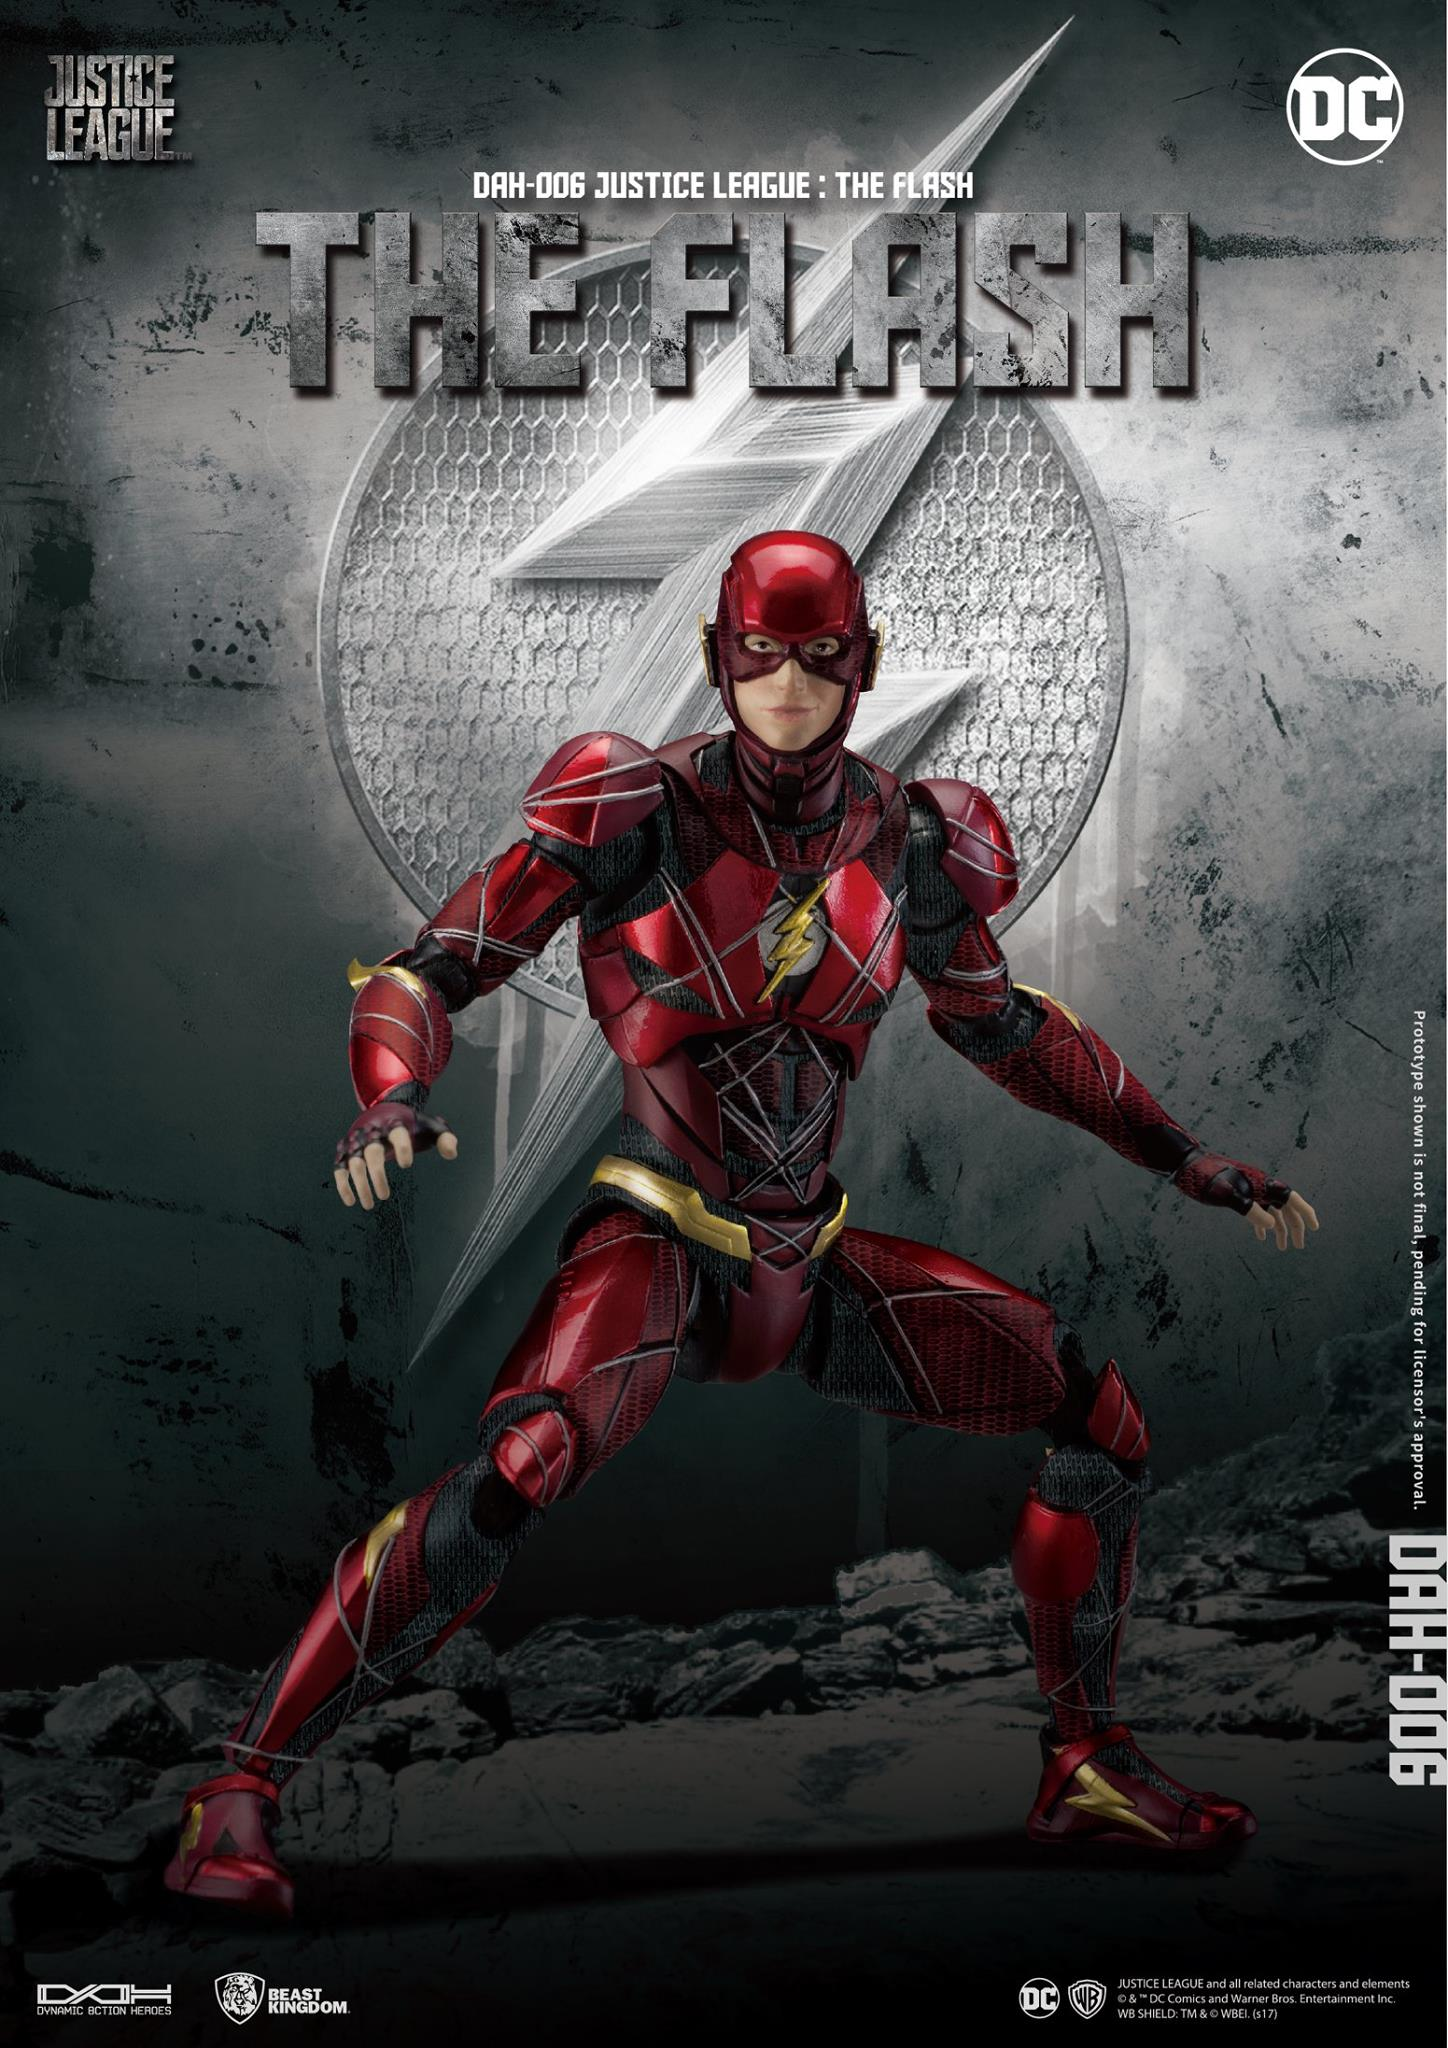 DAH-Justice-League-The-Flash-002